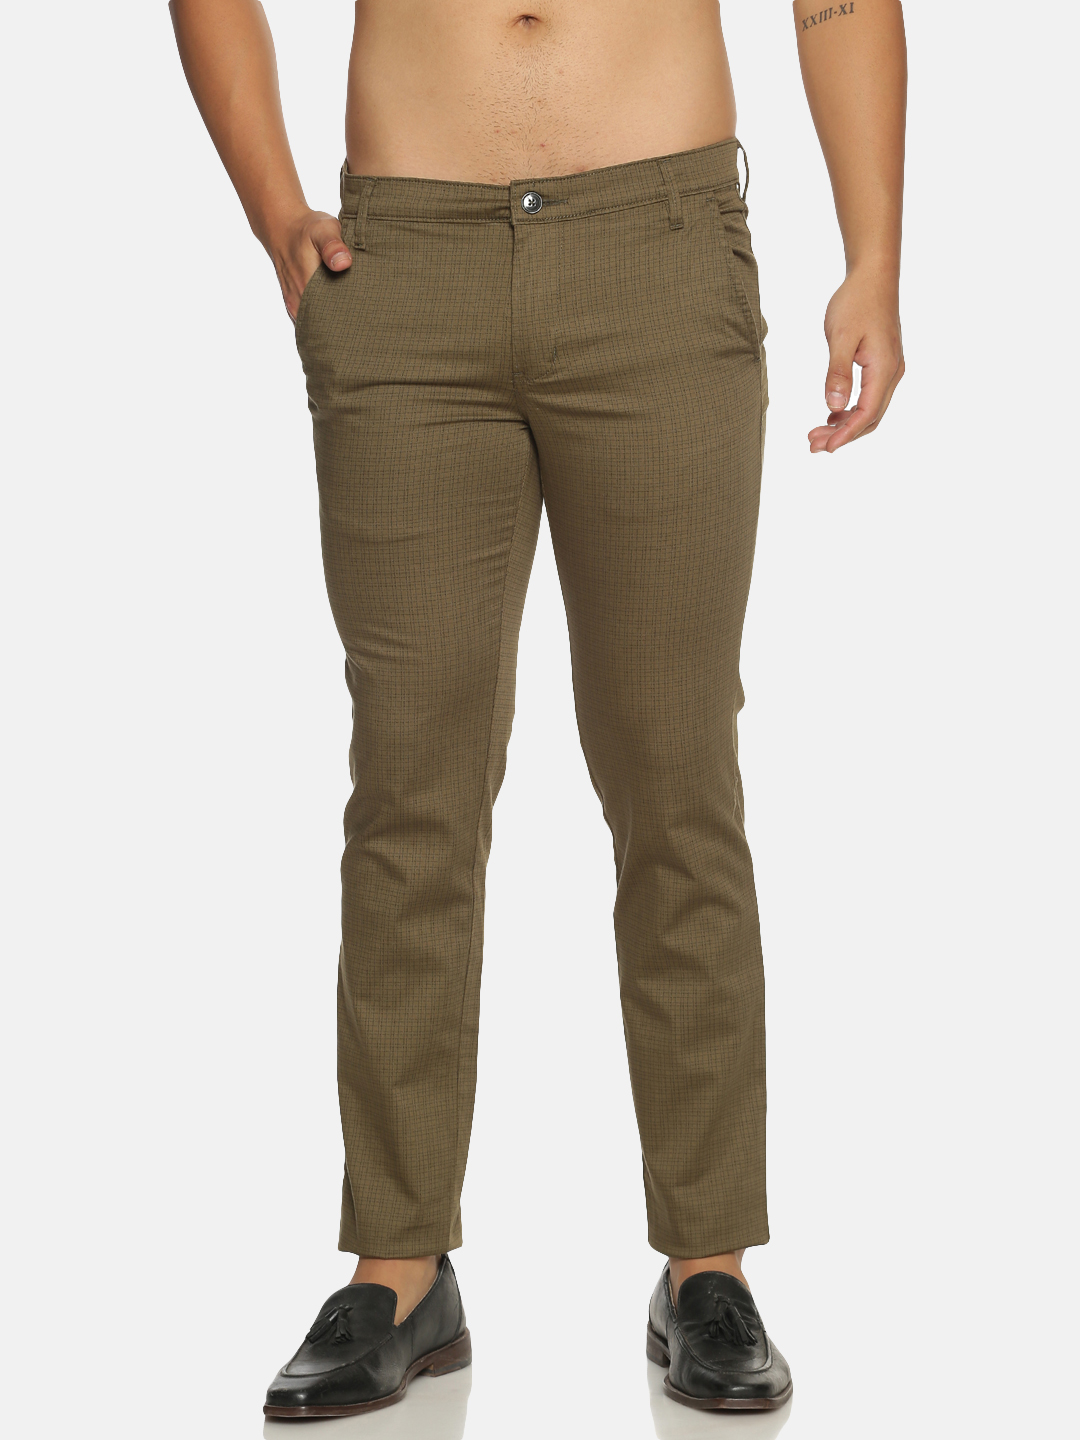 Chennis | Chennis Men's Casual olive Trouser